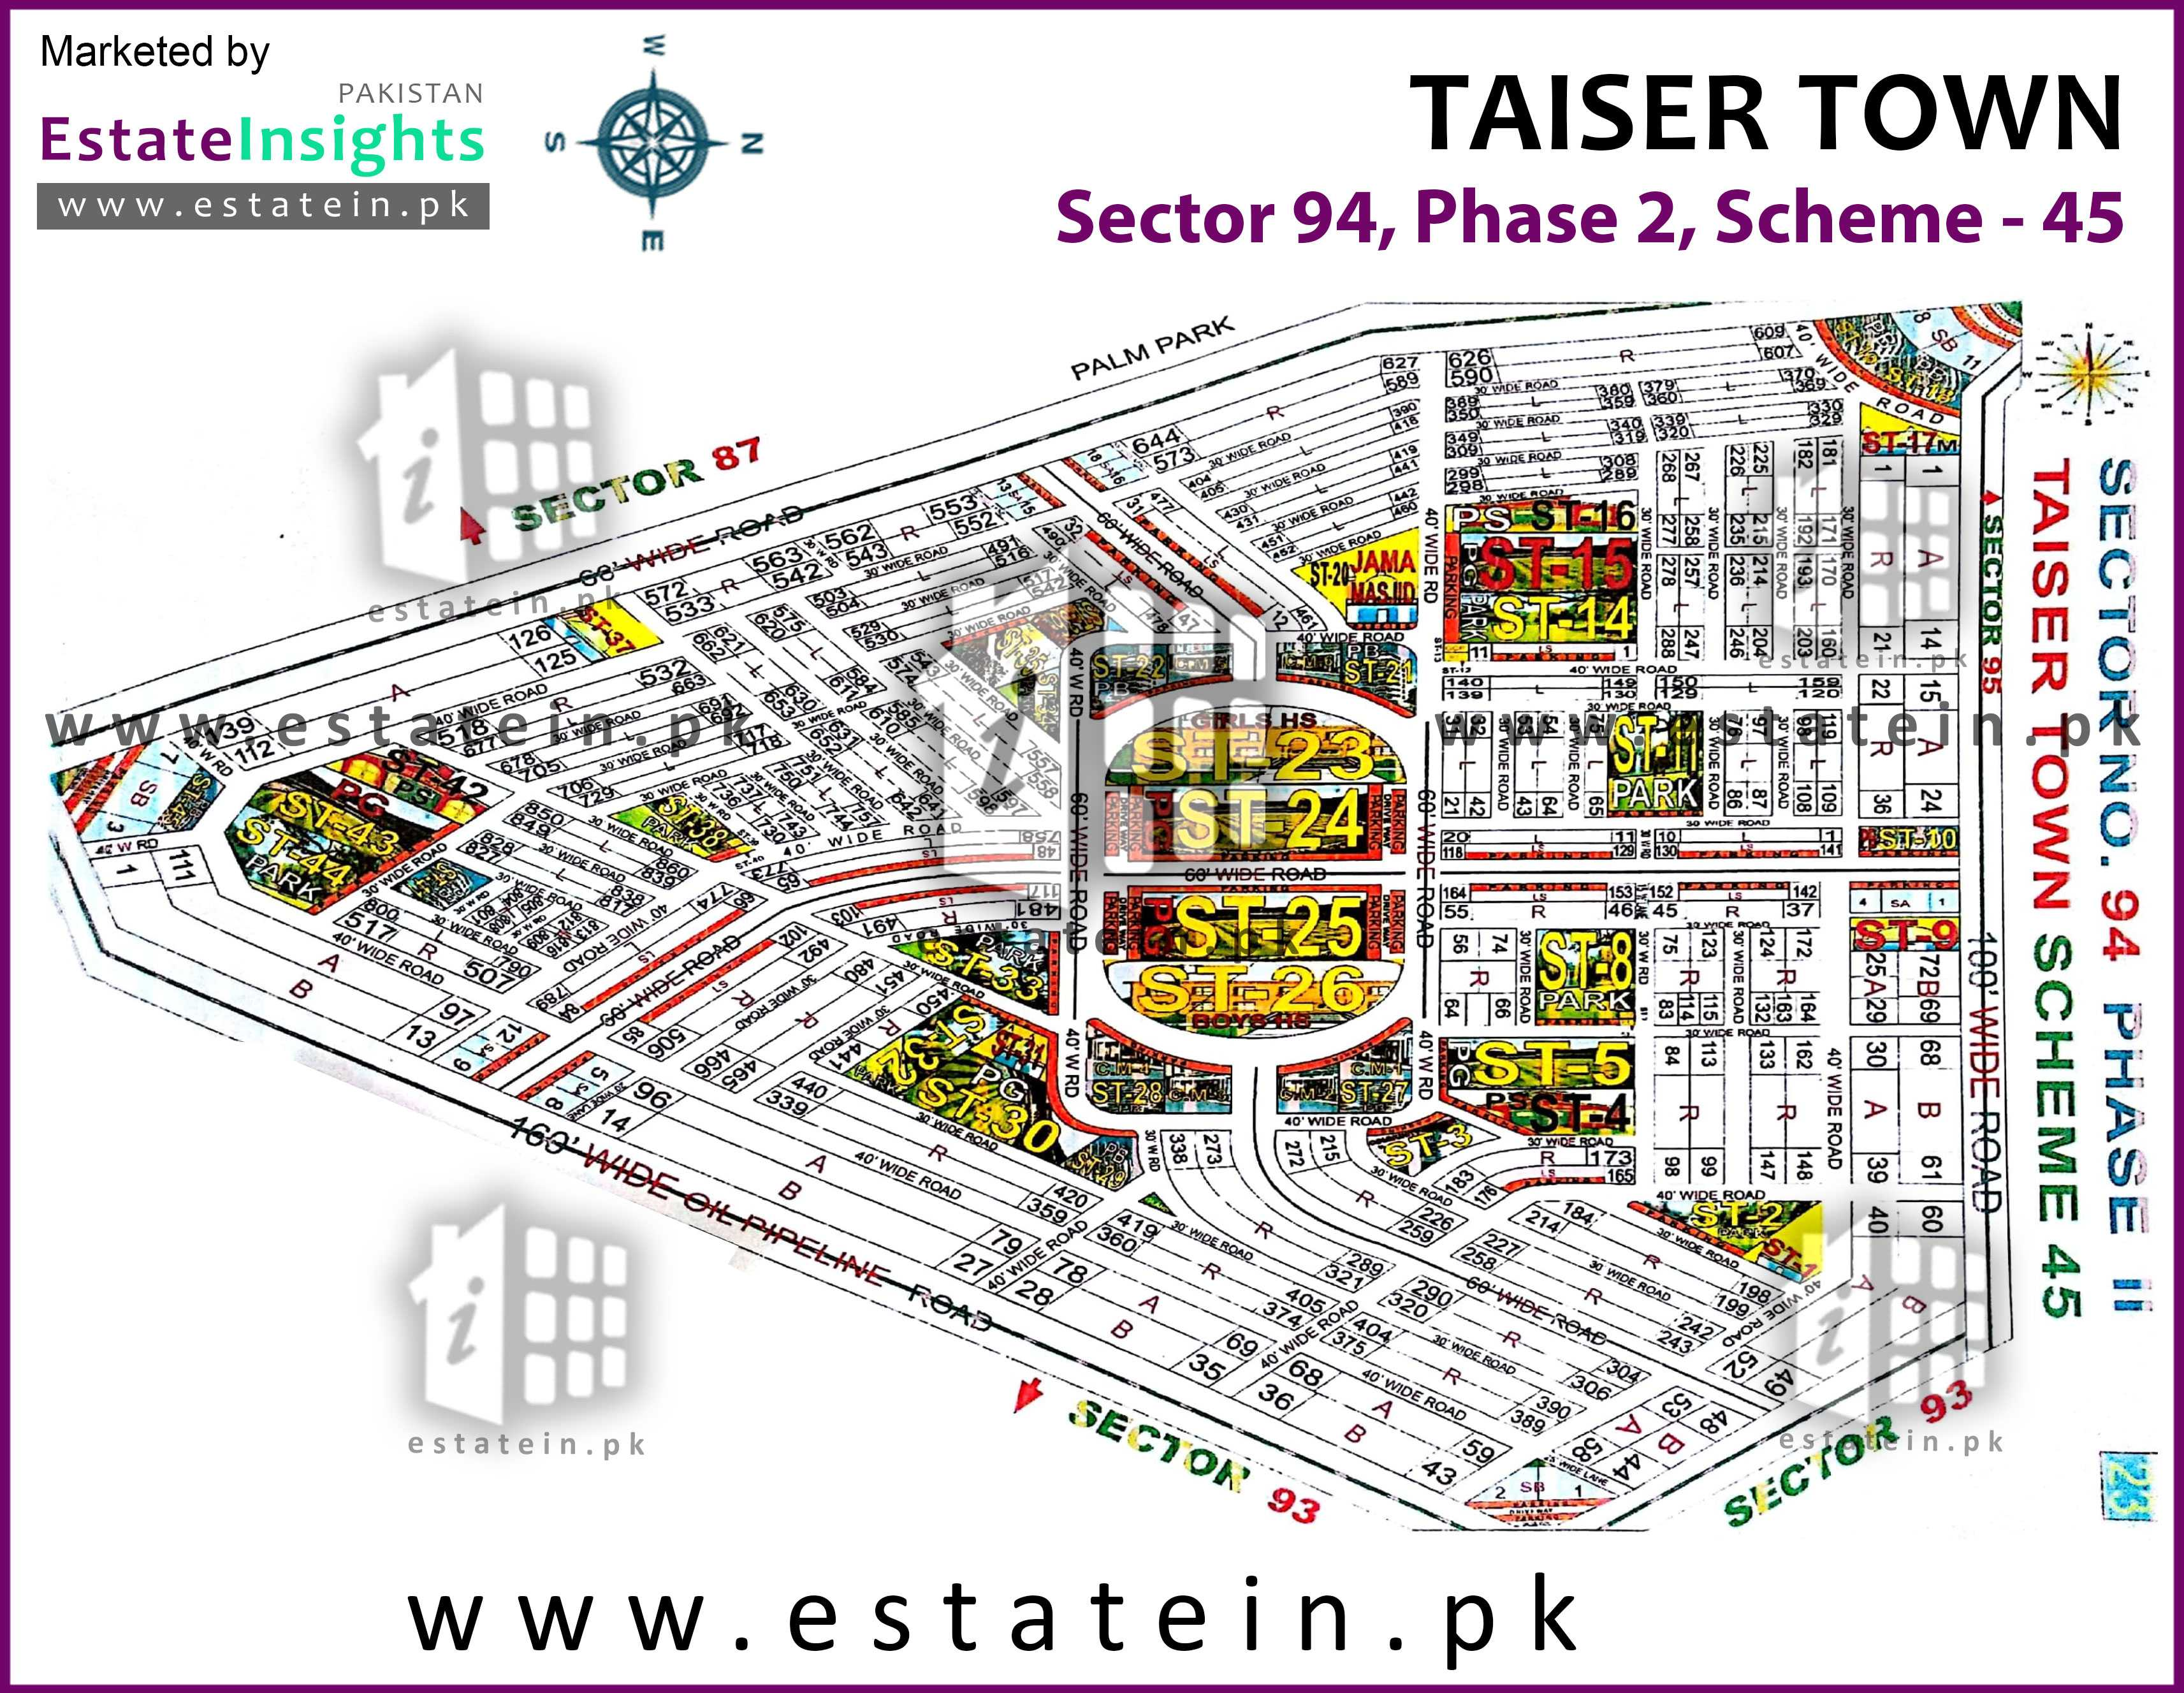 Site Plan of Sector 94 of Taiser Town Phase II